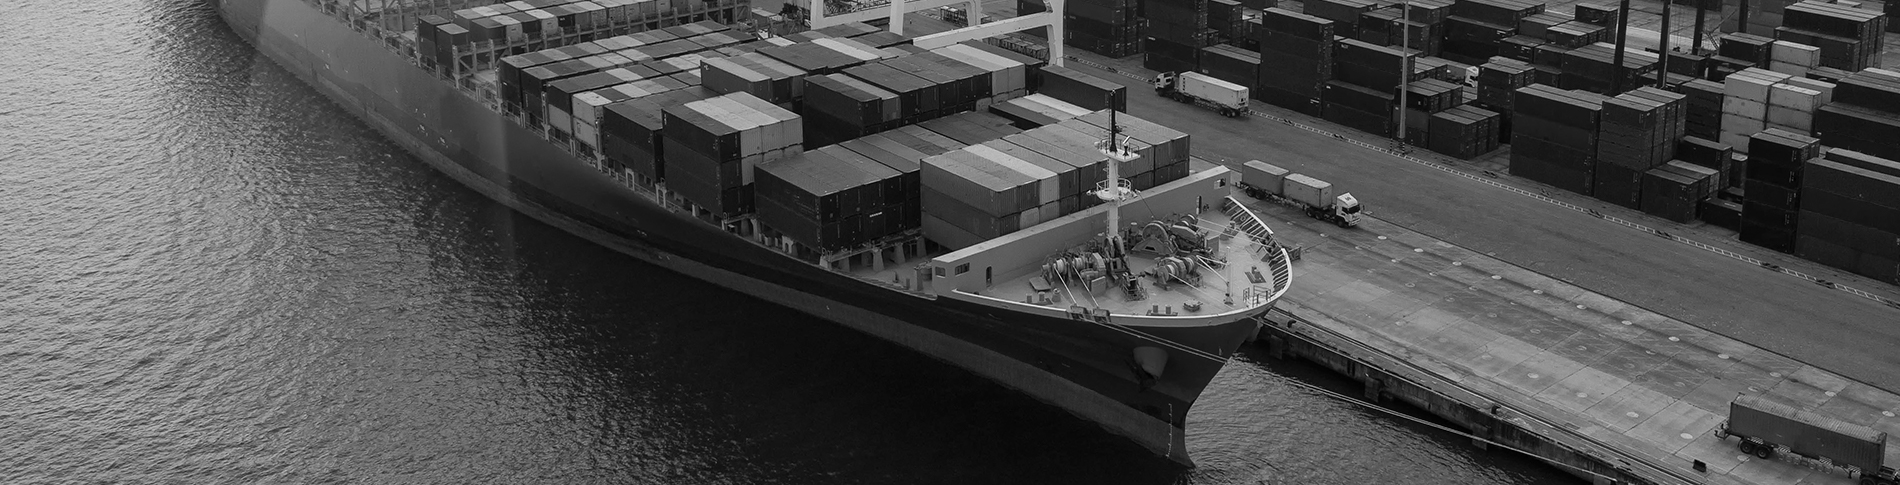 Sea Container Tracking & Monitoring solution